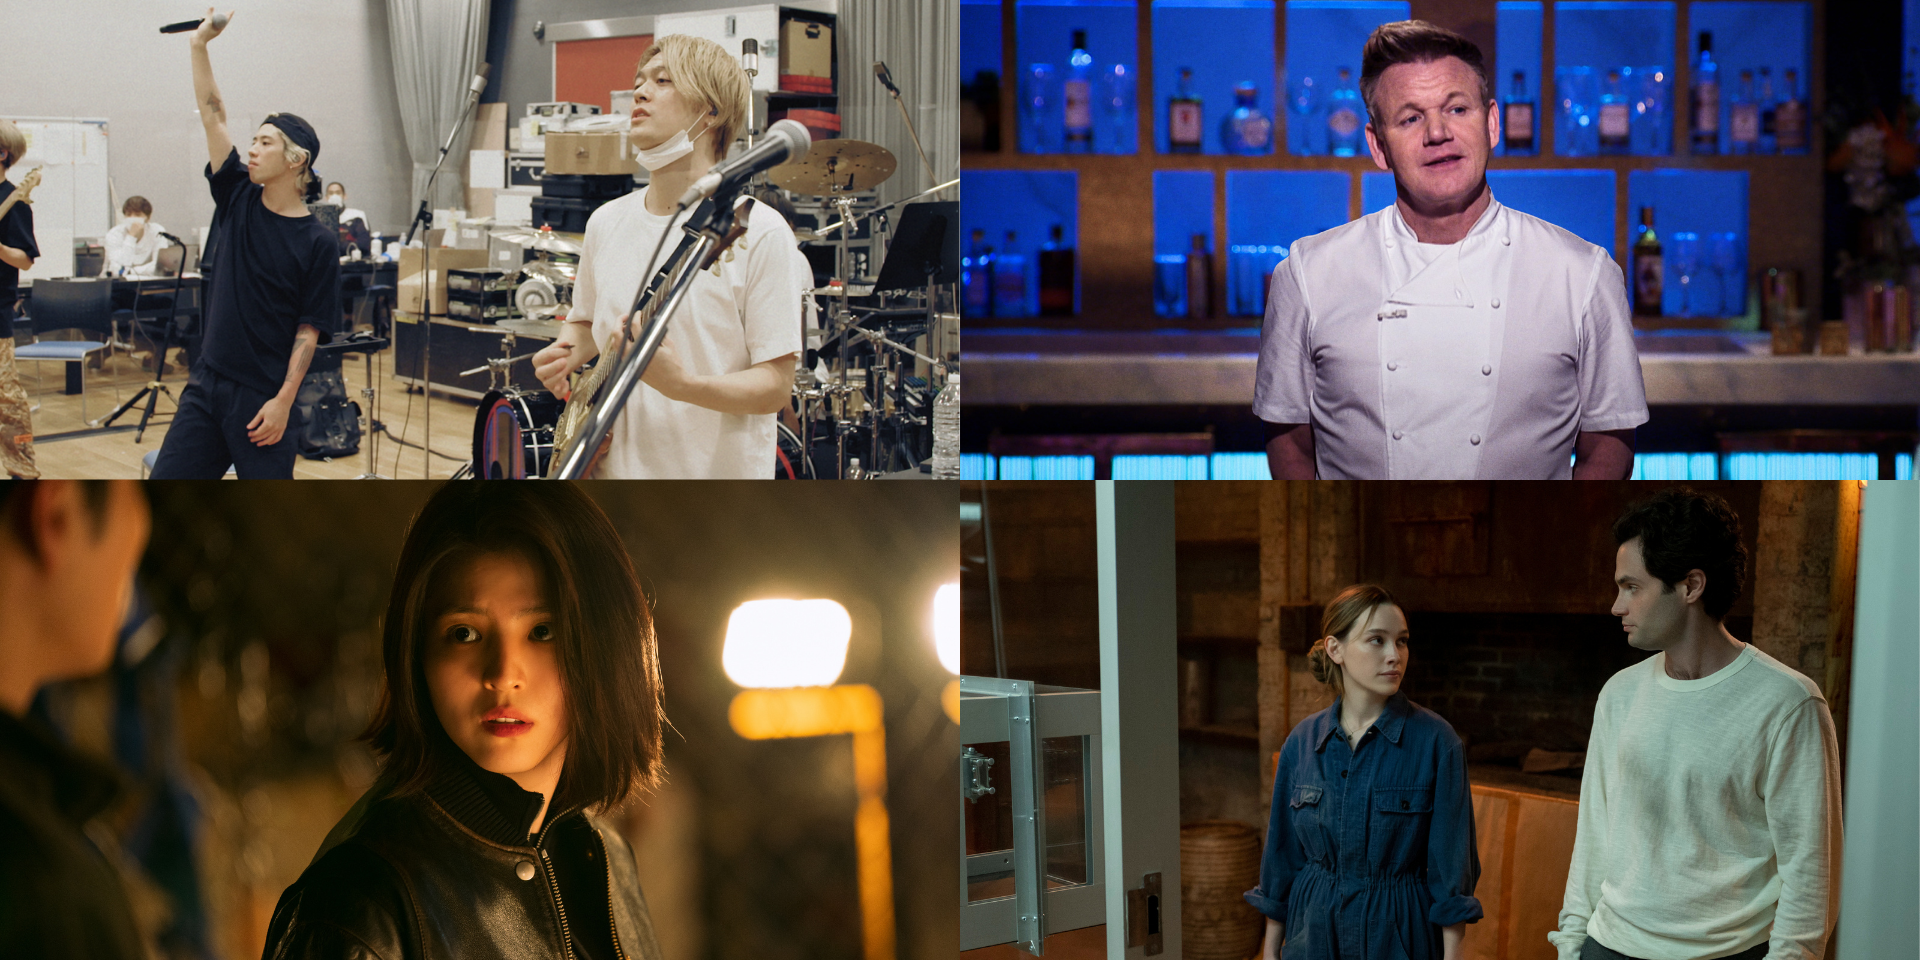 What to watch on Netflix Malaysia this October: You, My Name, ONE OK ROCK, Hell's Kitchen, and more